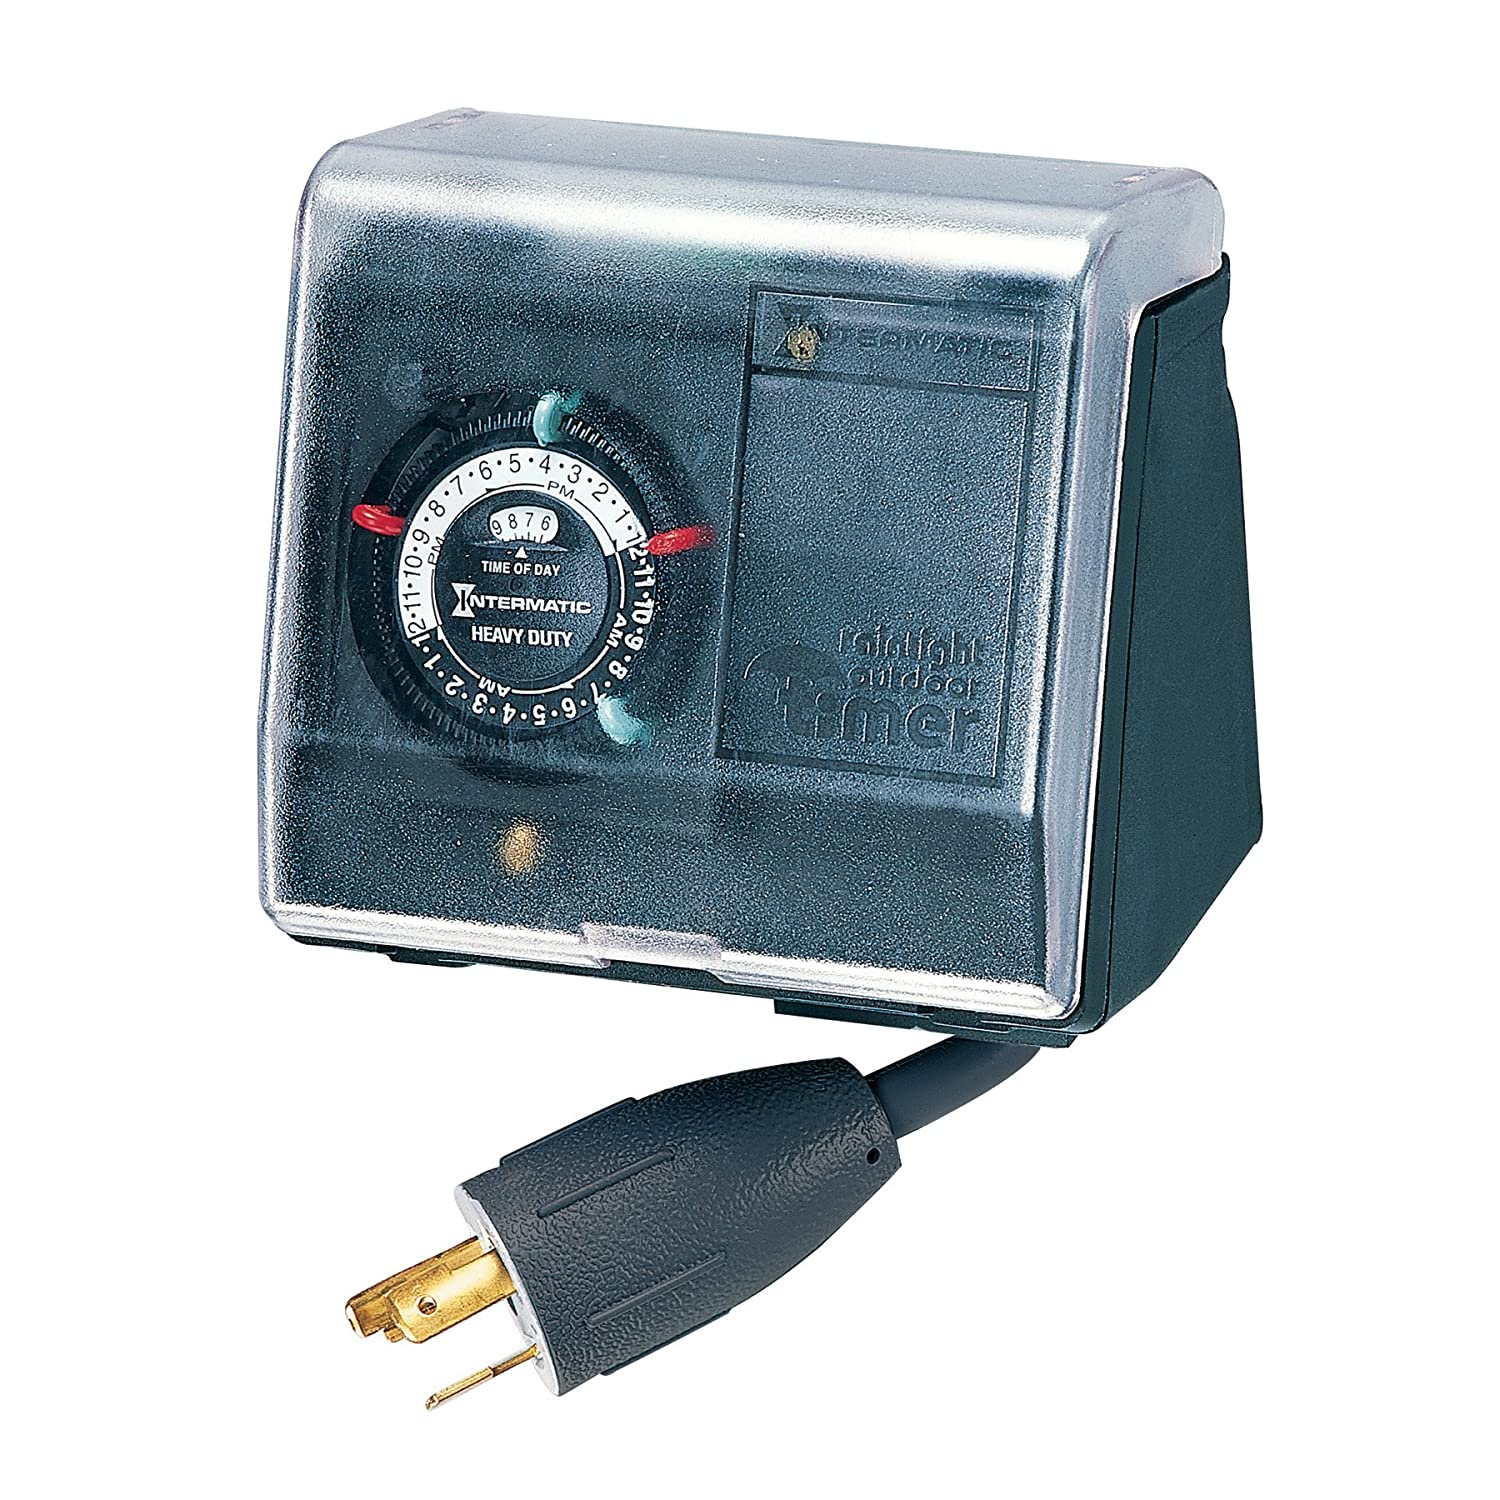 Intermatic P1131 Heavy Duty Above Ground Pool Pump Timer With Twist Freeze Protector Wiring Diagram Lock Plug And Receptacle In Switches